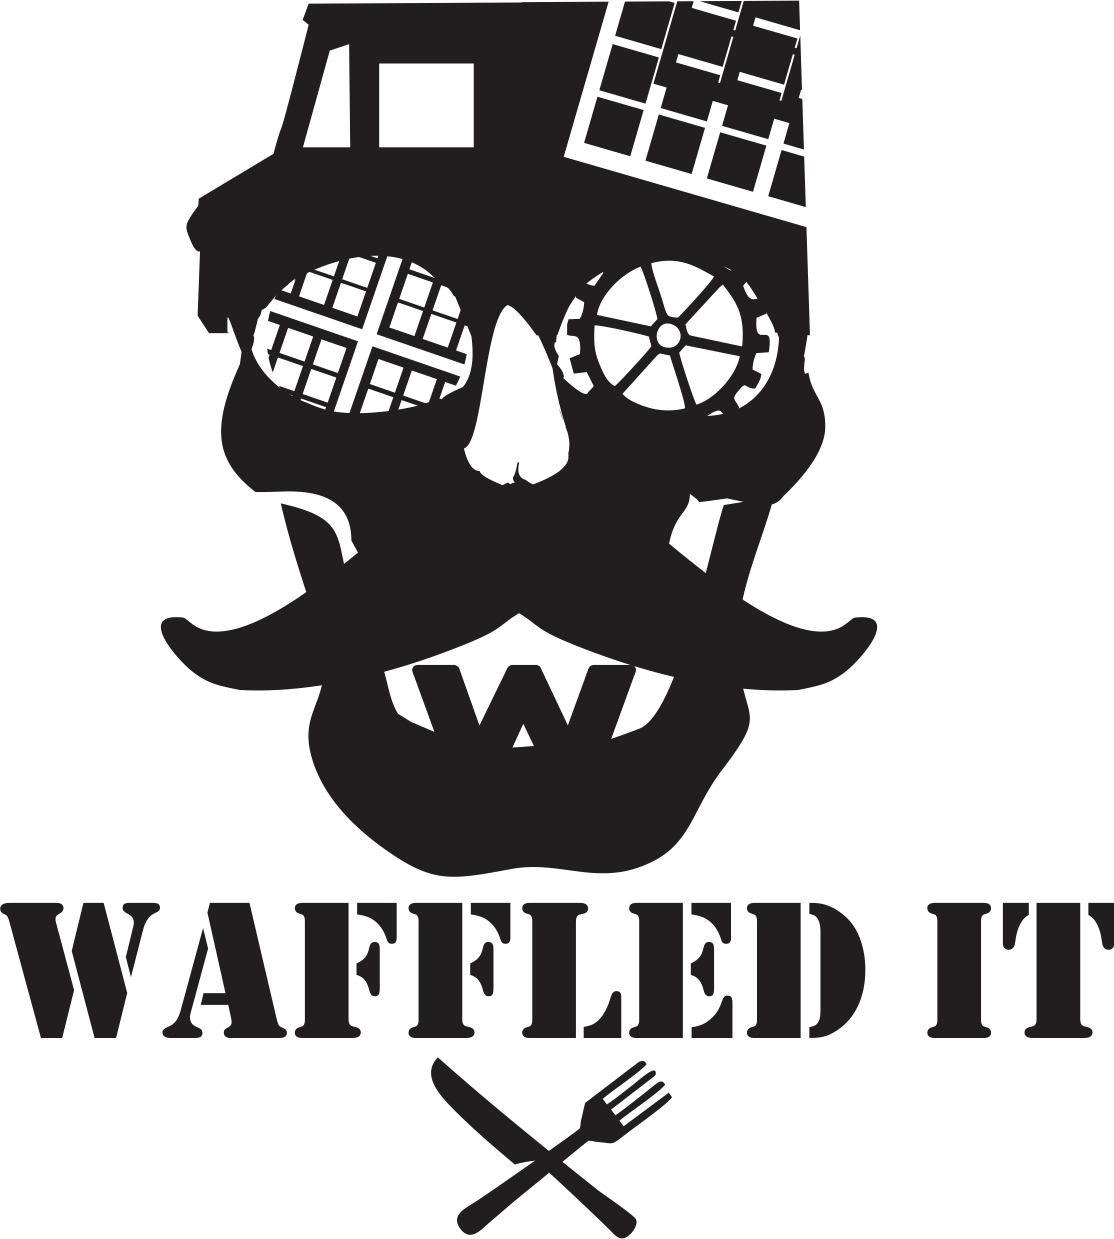 New nationwide traveling food truck needs design for logo and truck wrap. Fun and hipster friendly! Veteran owned